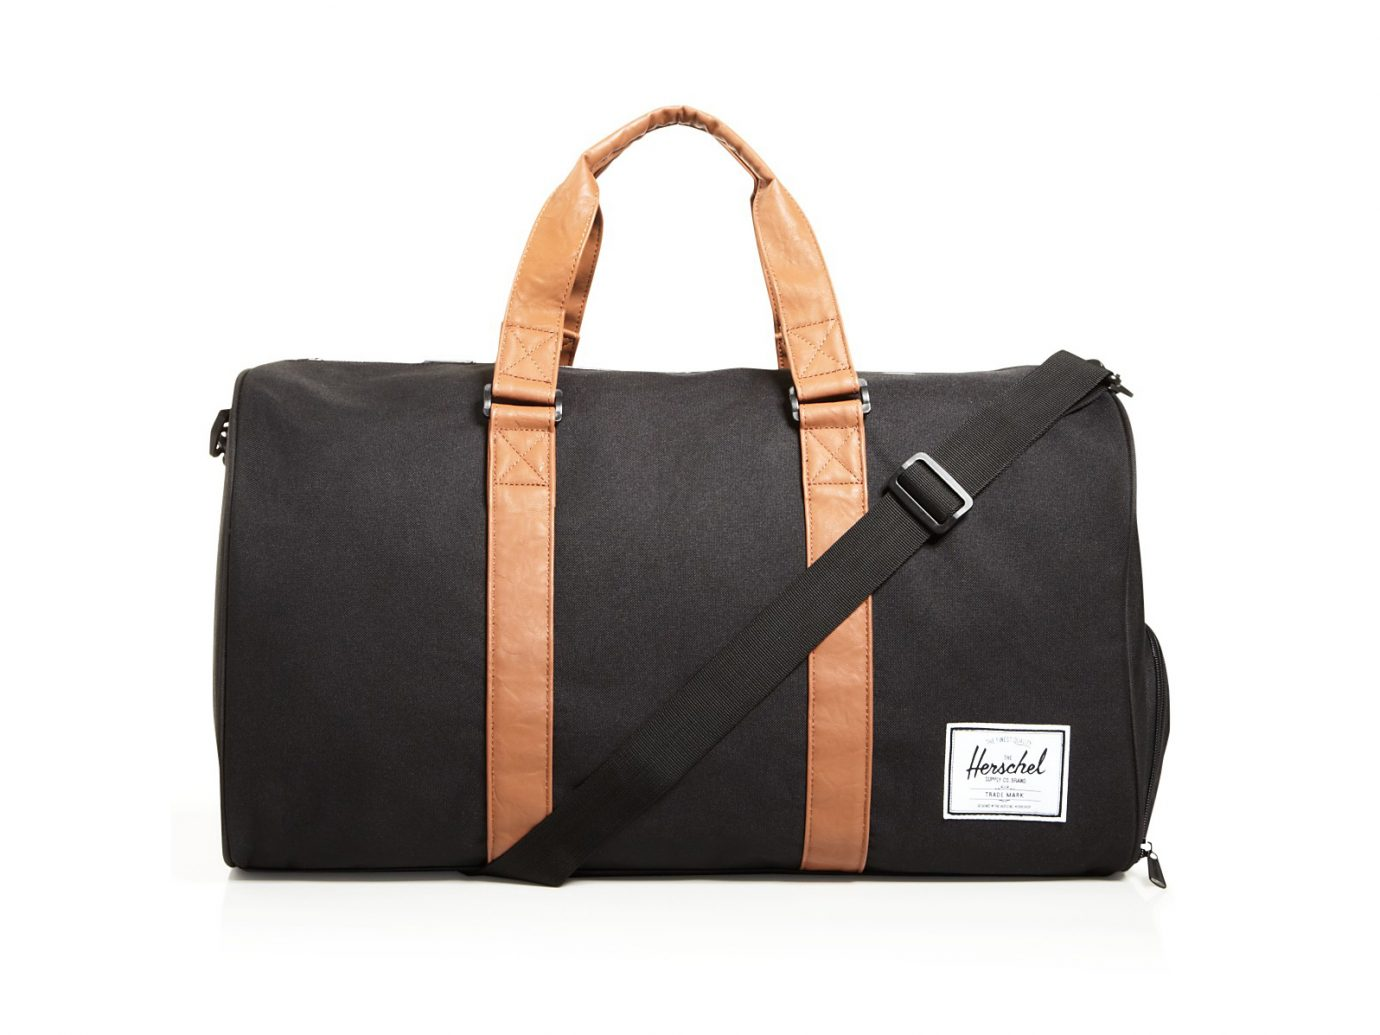 Best Weekend Bags Herschel Supply Co. Novel Duffel Bag